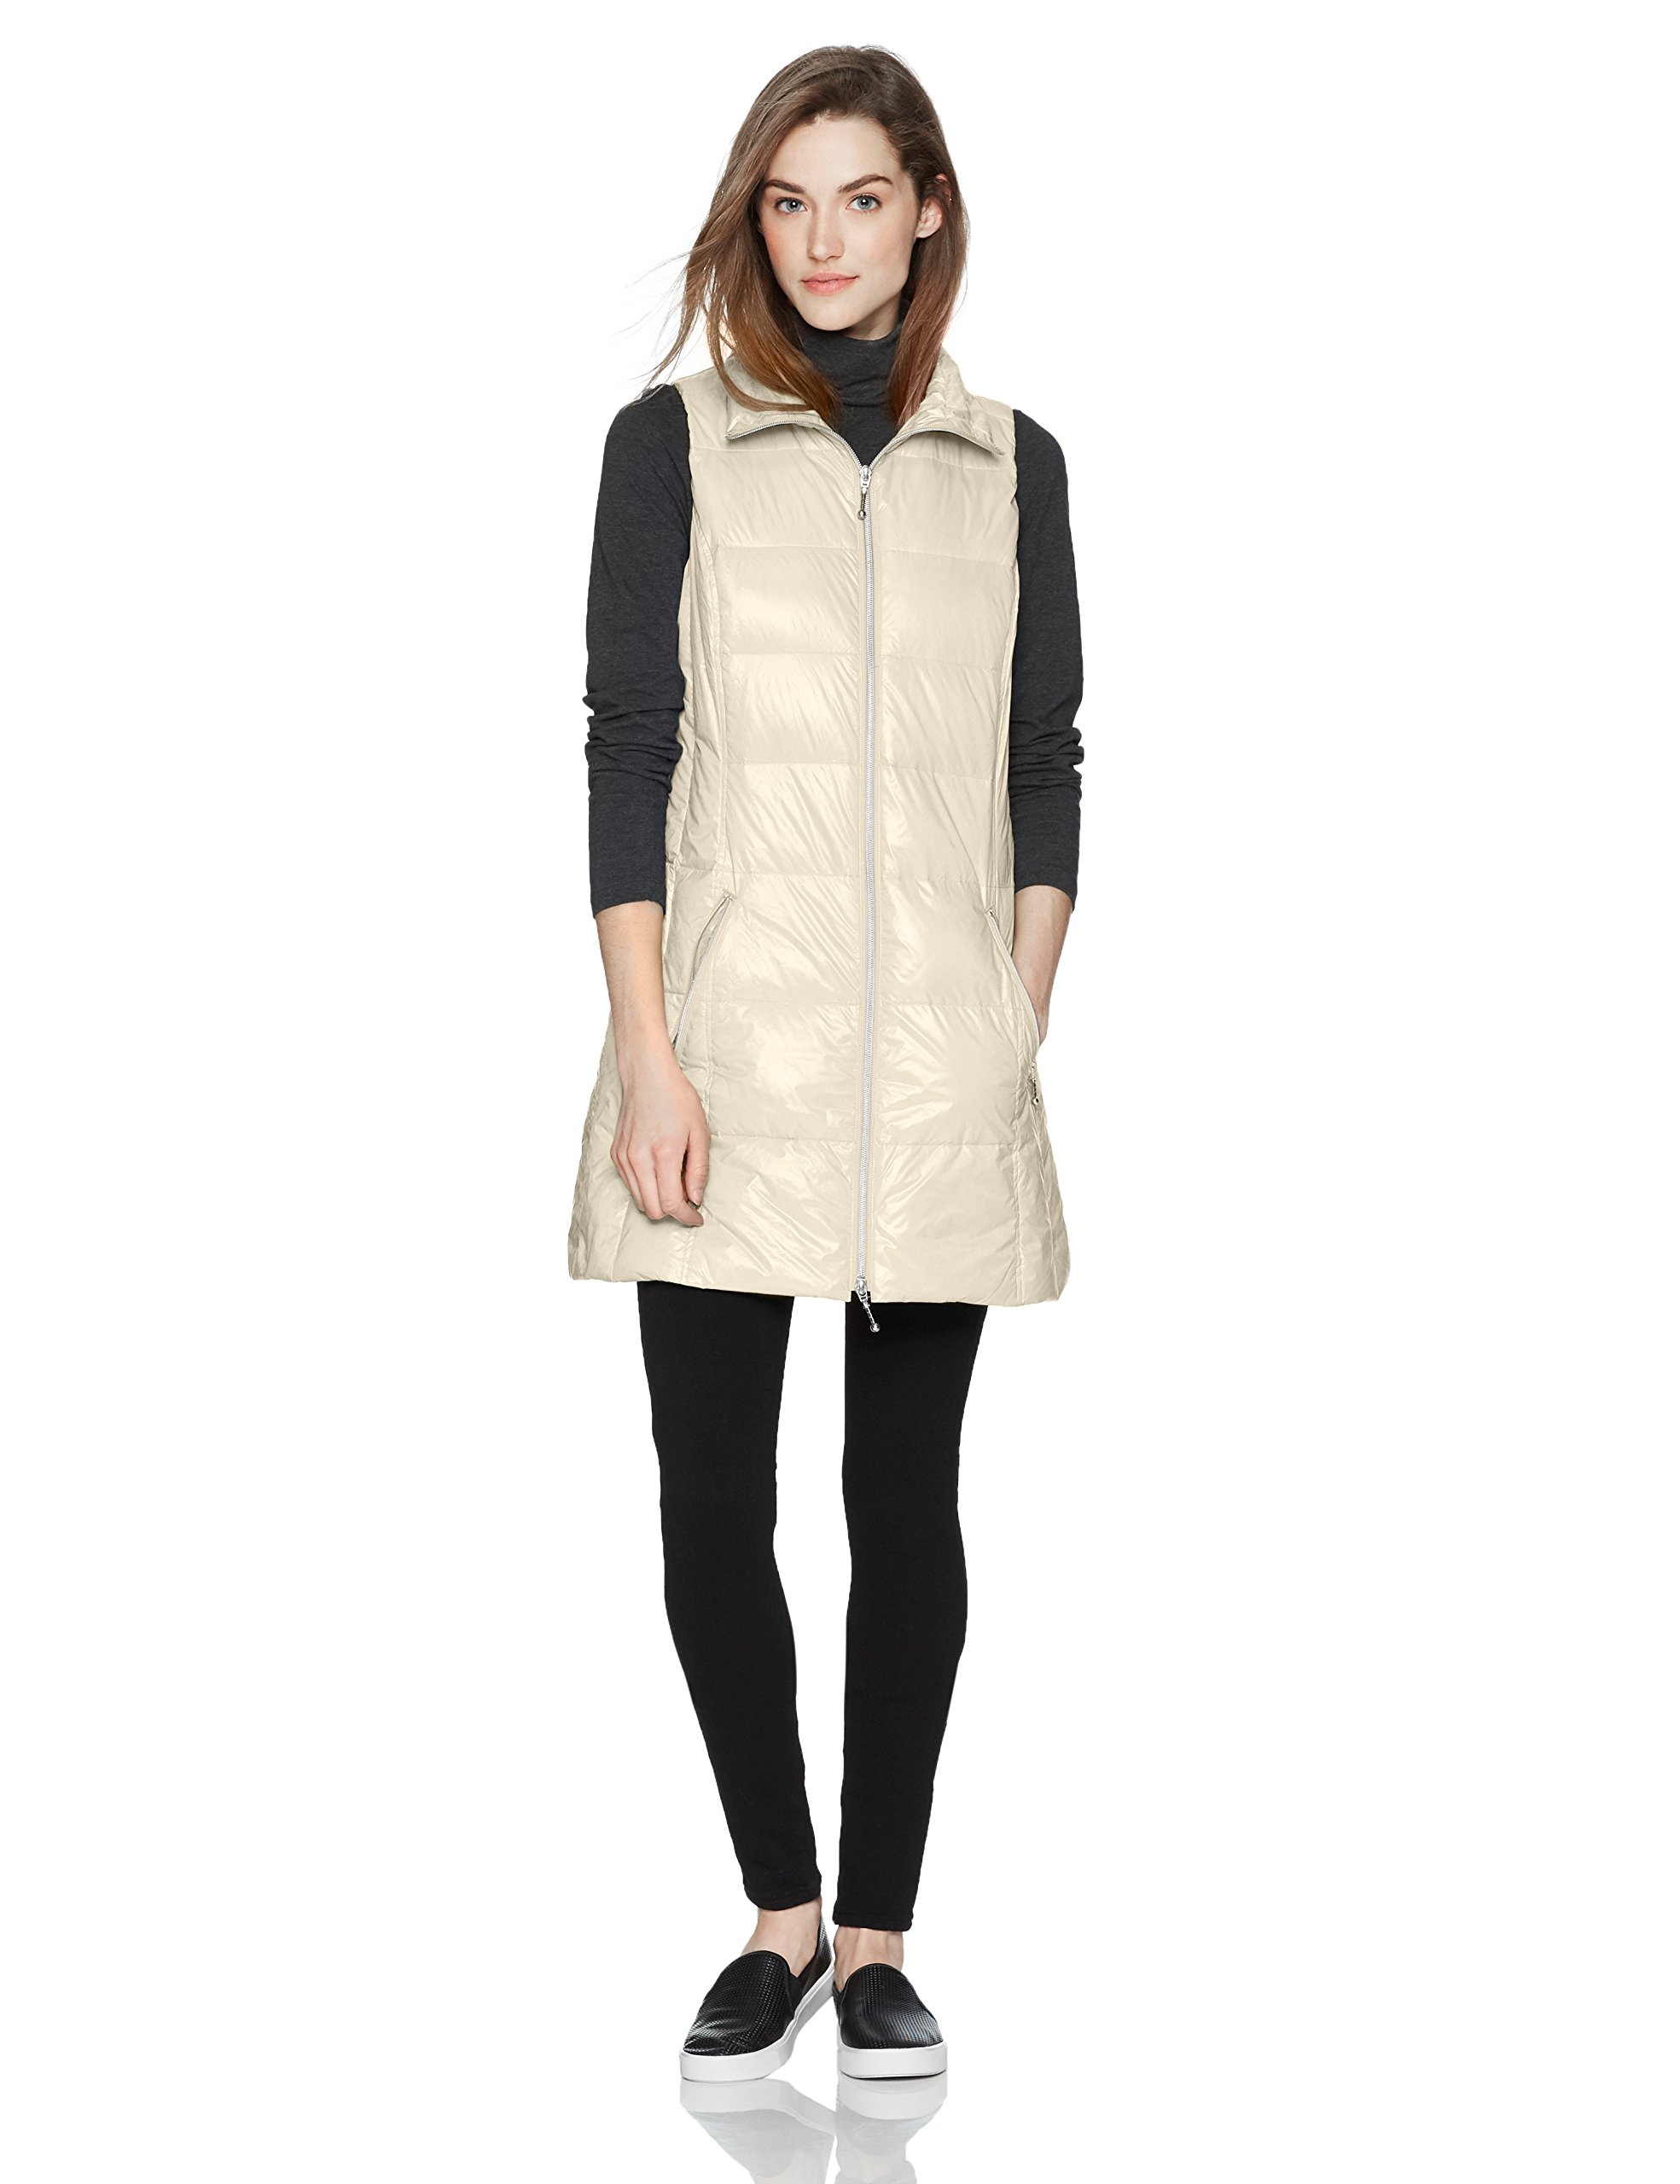 Coatology Women's Classic Long Down Vest, Ivory, S by Coatology